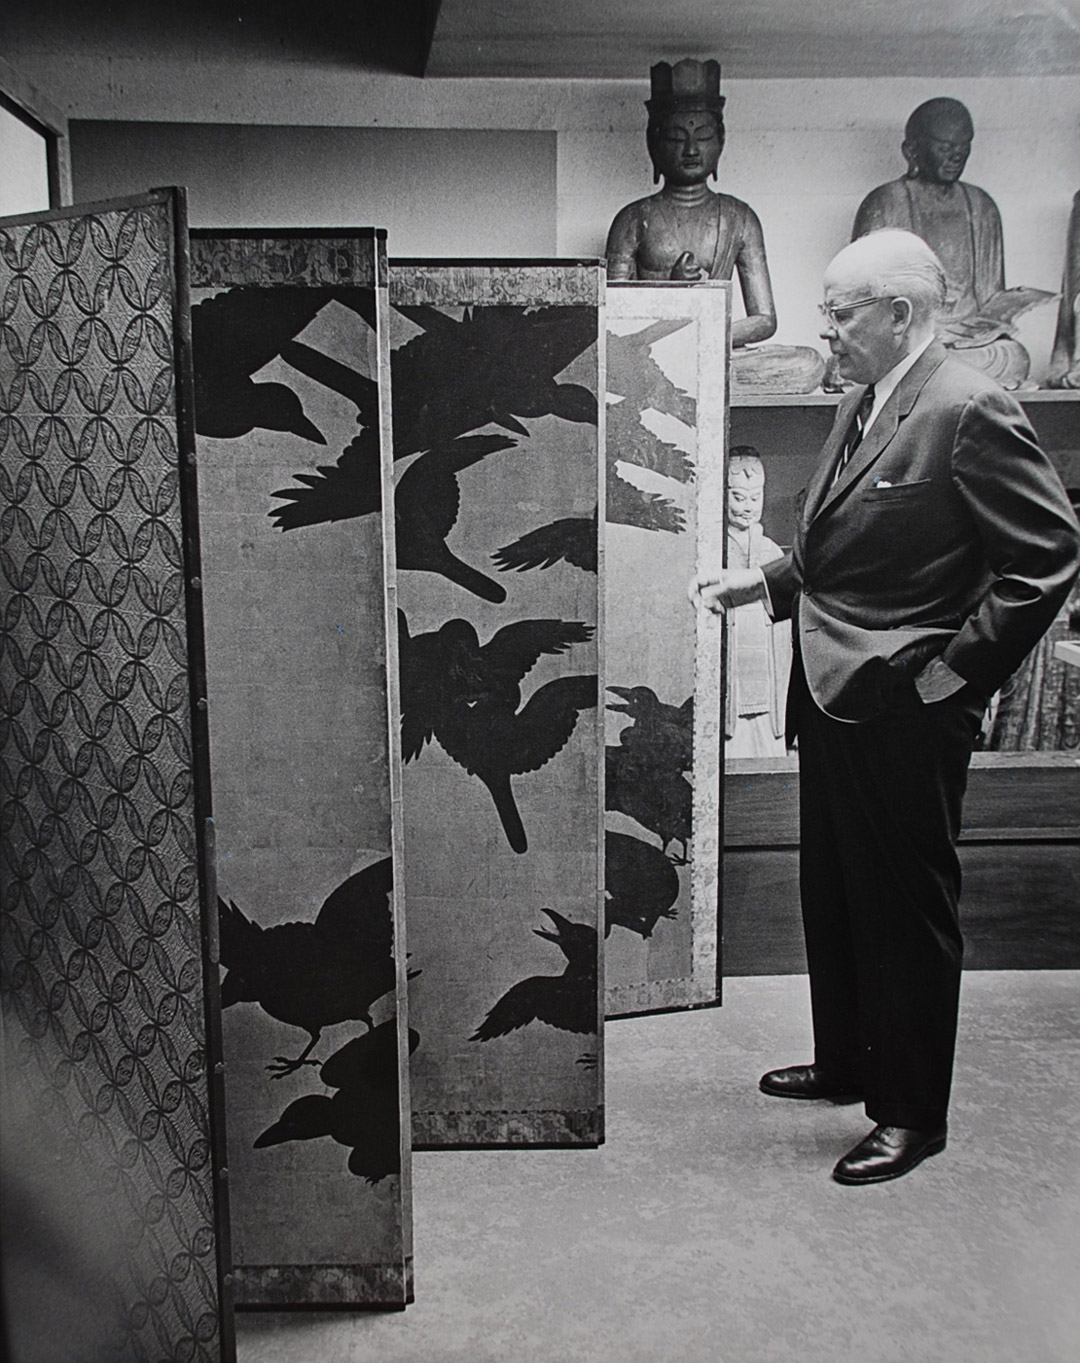 Dr. Fuller in storage with Crows screen